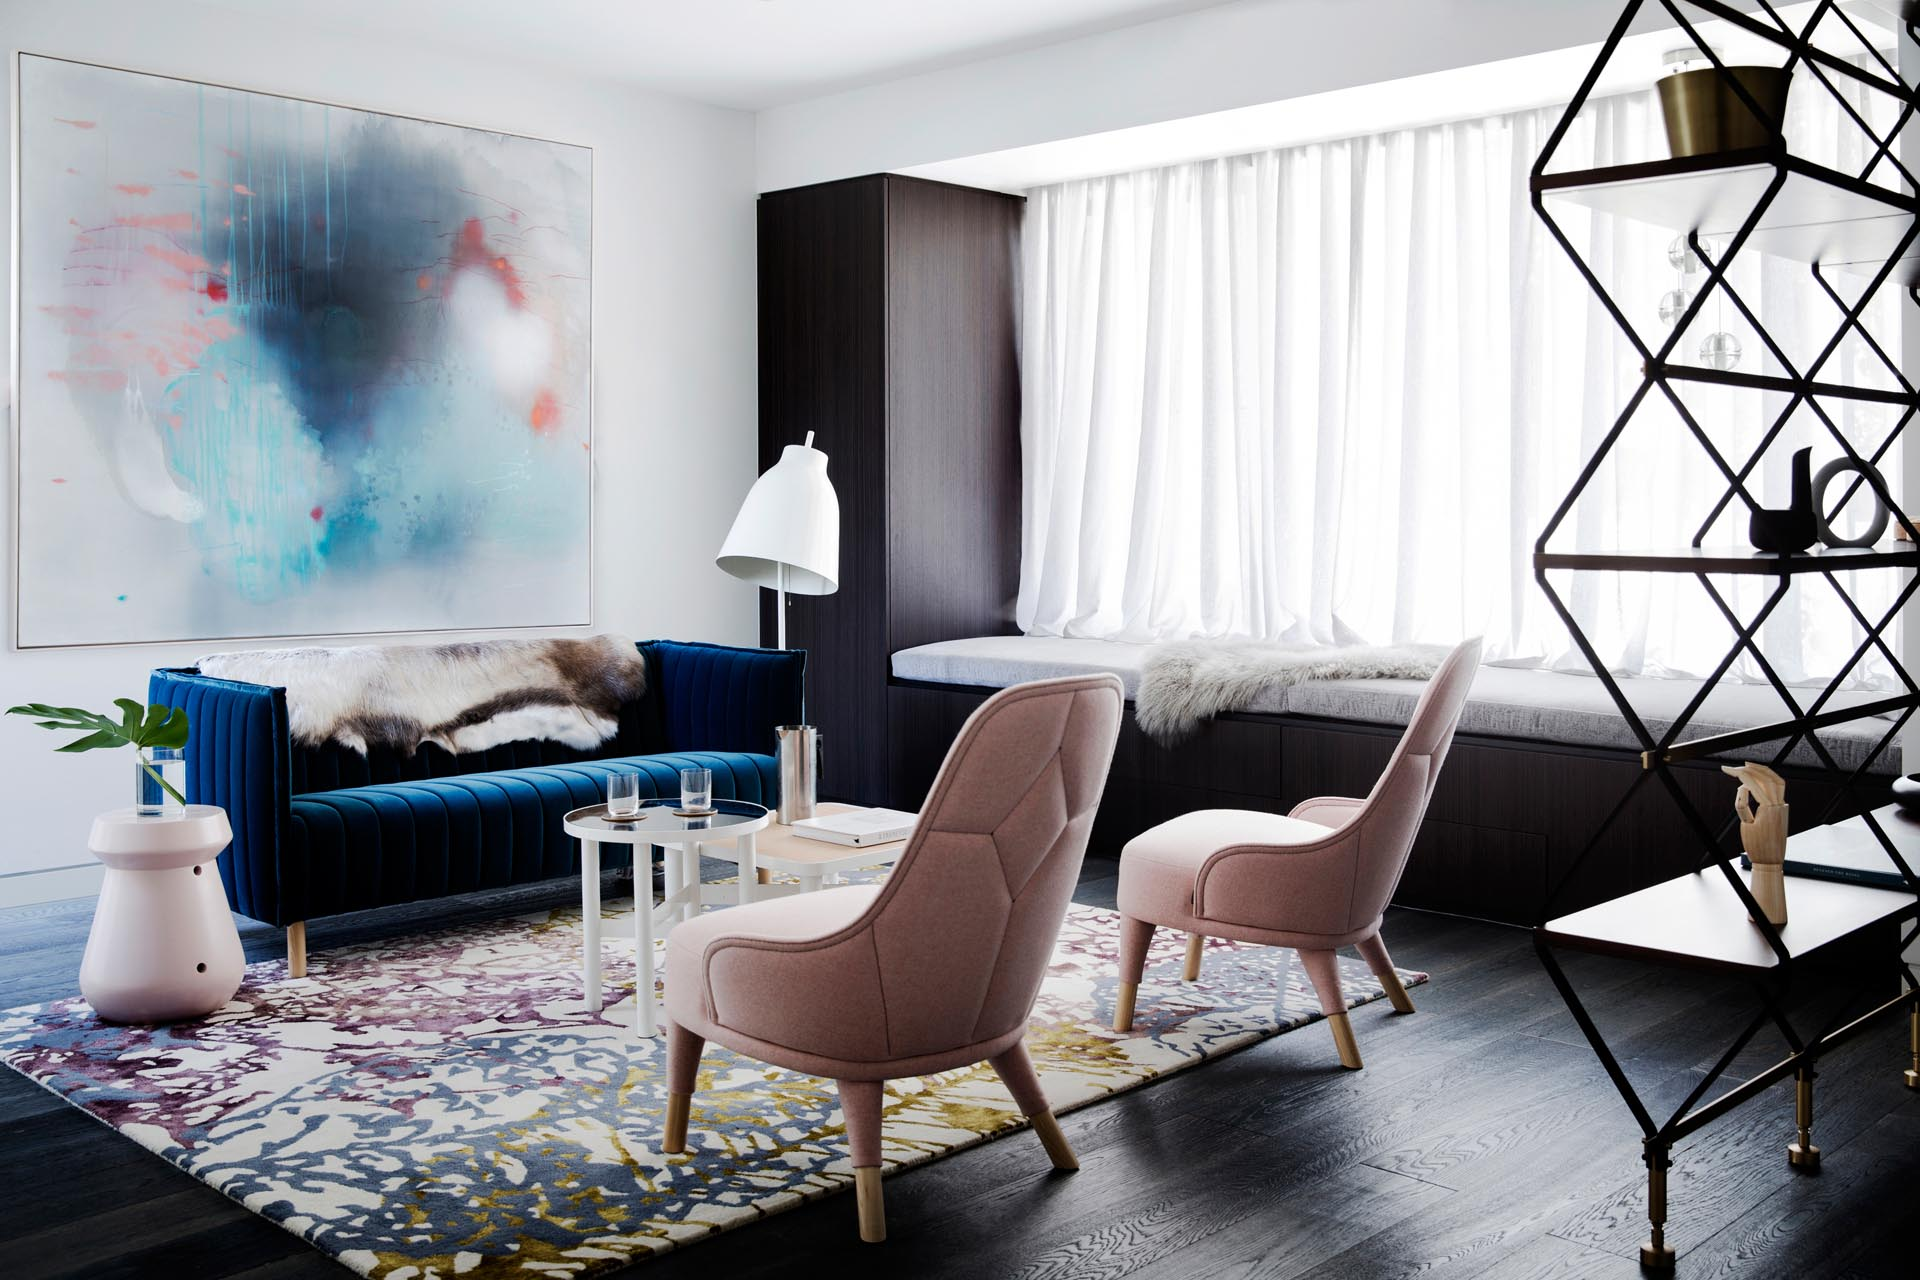 A modern living room with a built-in window bench, and blue and blush pink furniture accents.